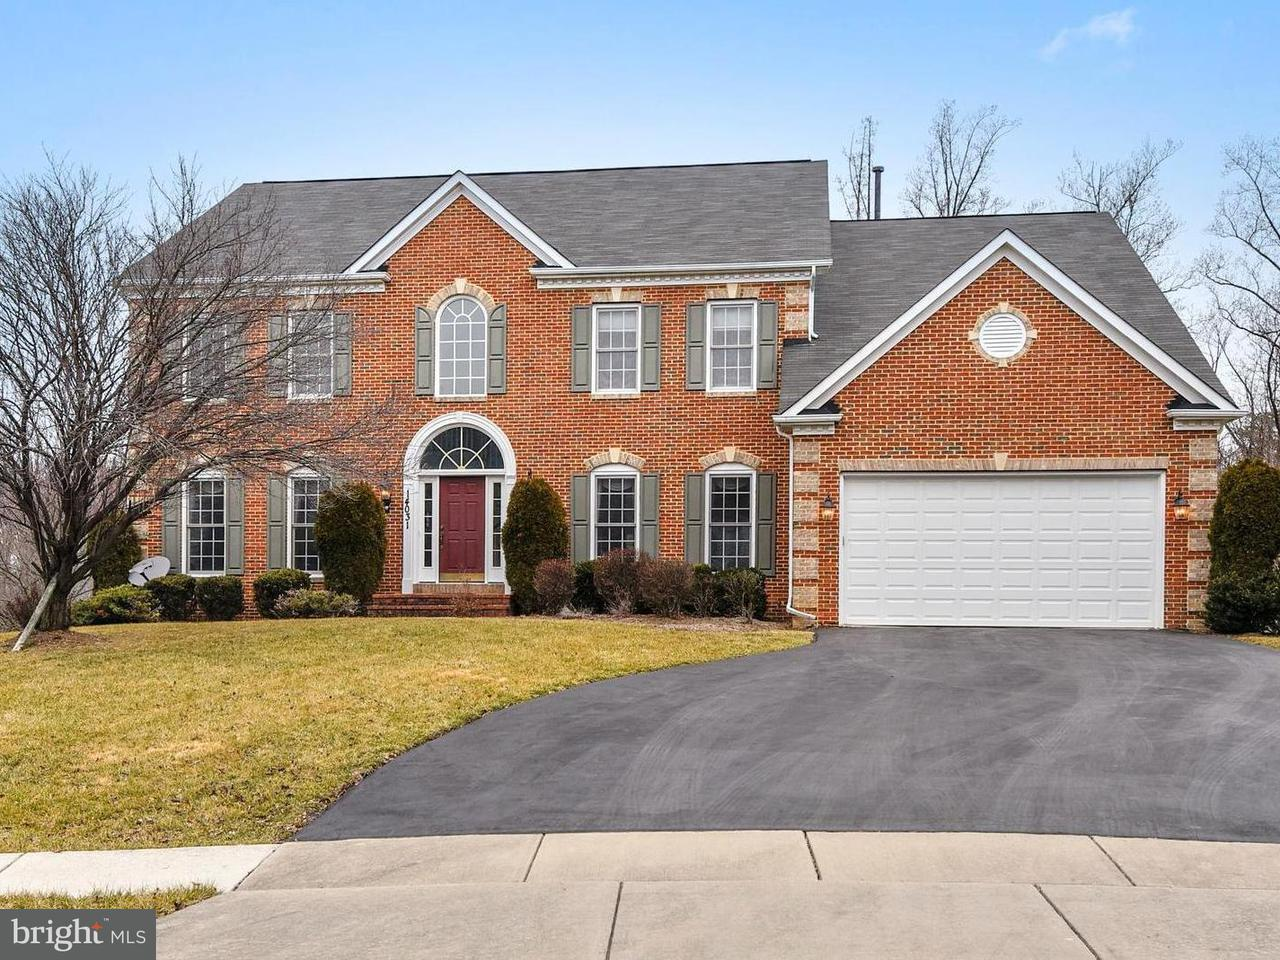 Single Family Home for Sale at 14031 Welland Ter 14031 Welland Ter North Potomac, Maryland 20878 United States